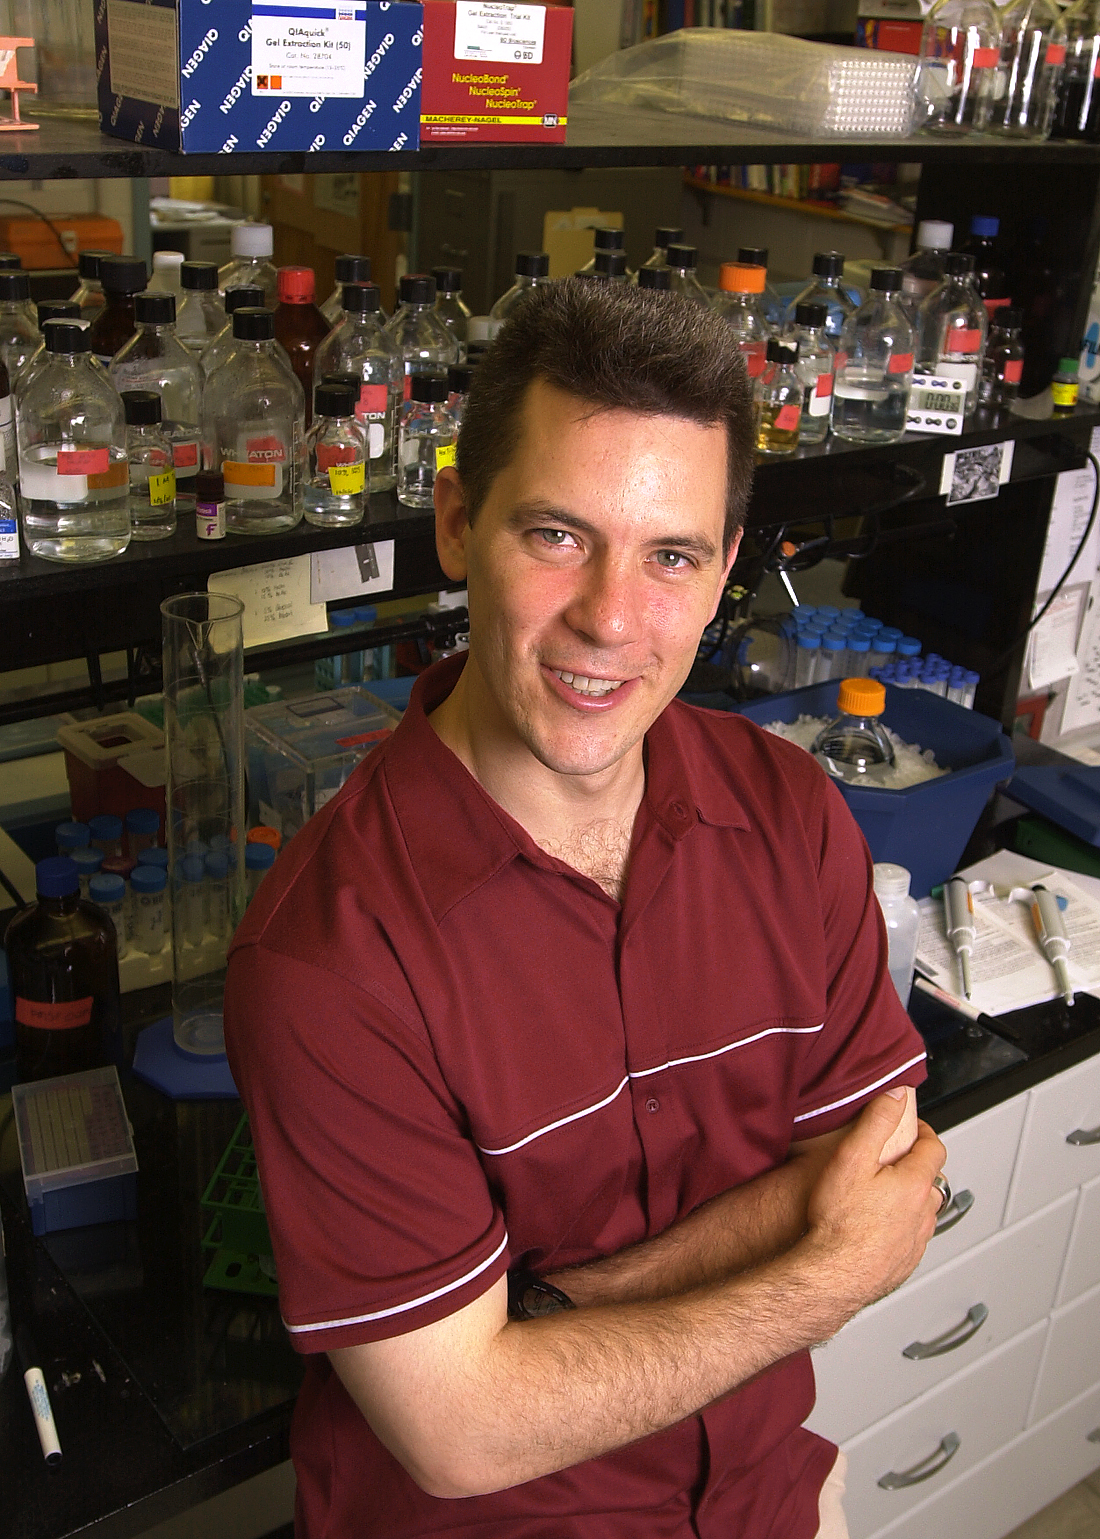 Image of Brian Freeman - Associate Professor of Cell and Developmental Biology